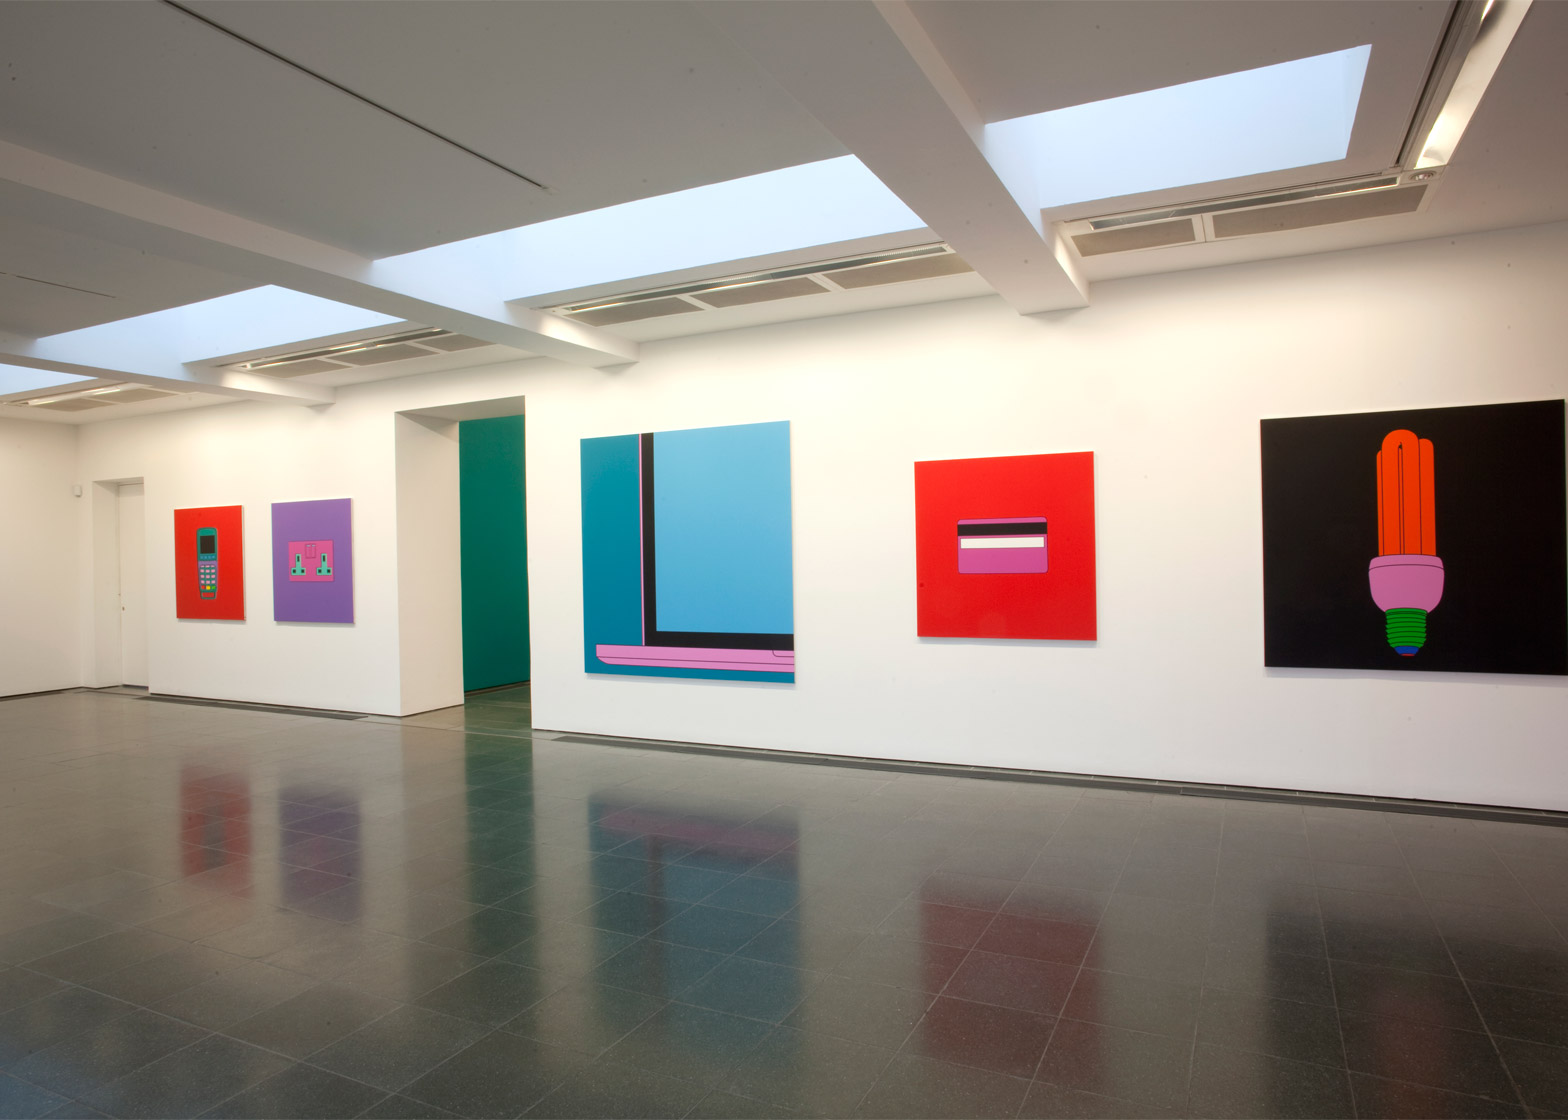 Michael Craig-Martin's Transience exhibition traces the evolution of electronic product design